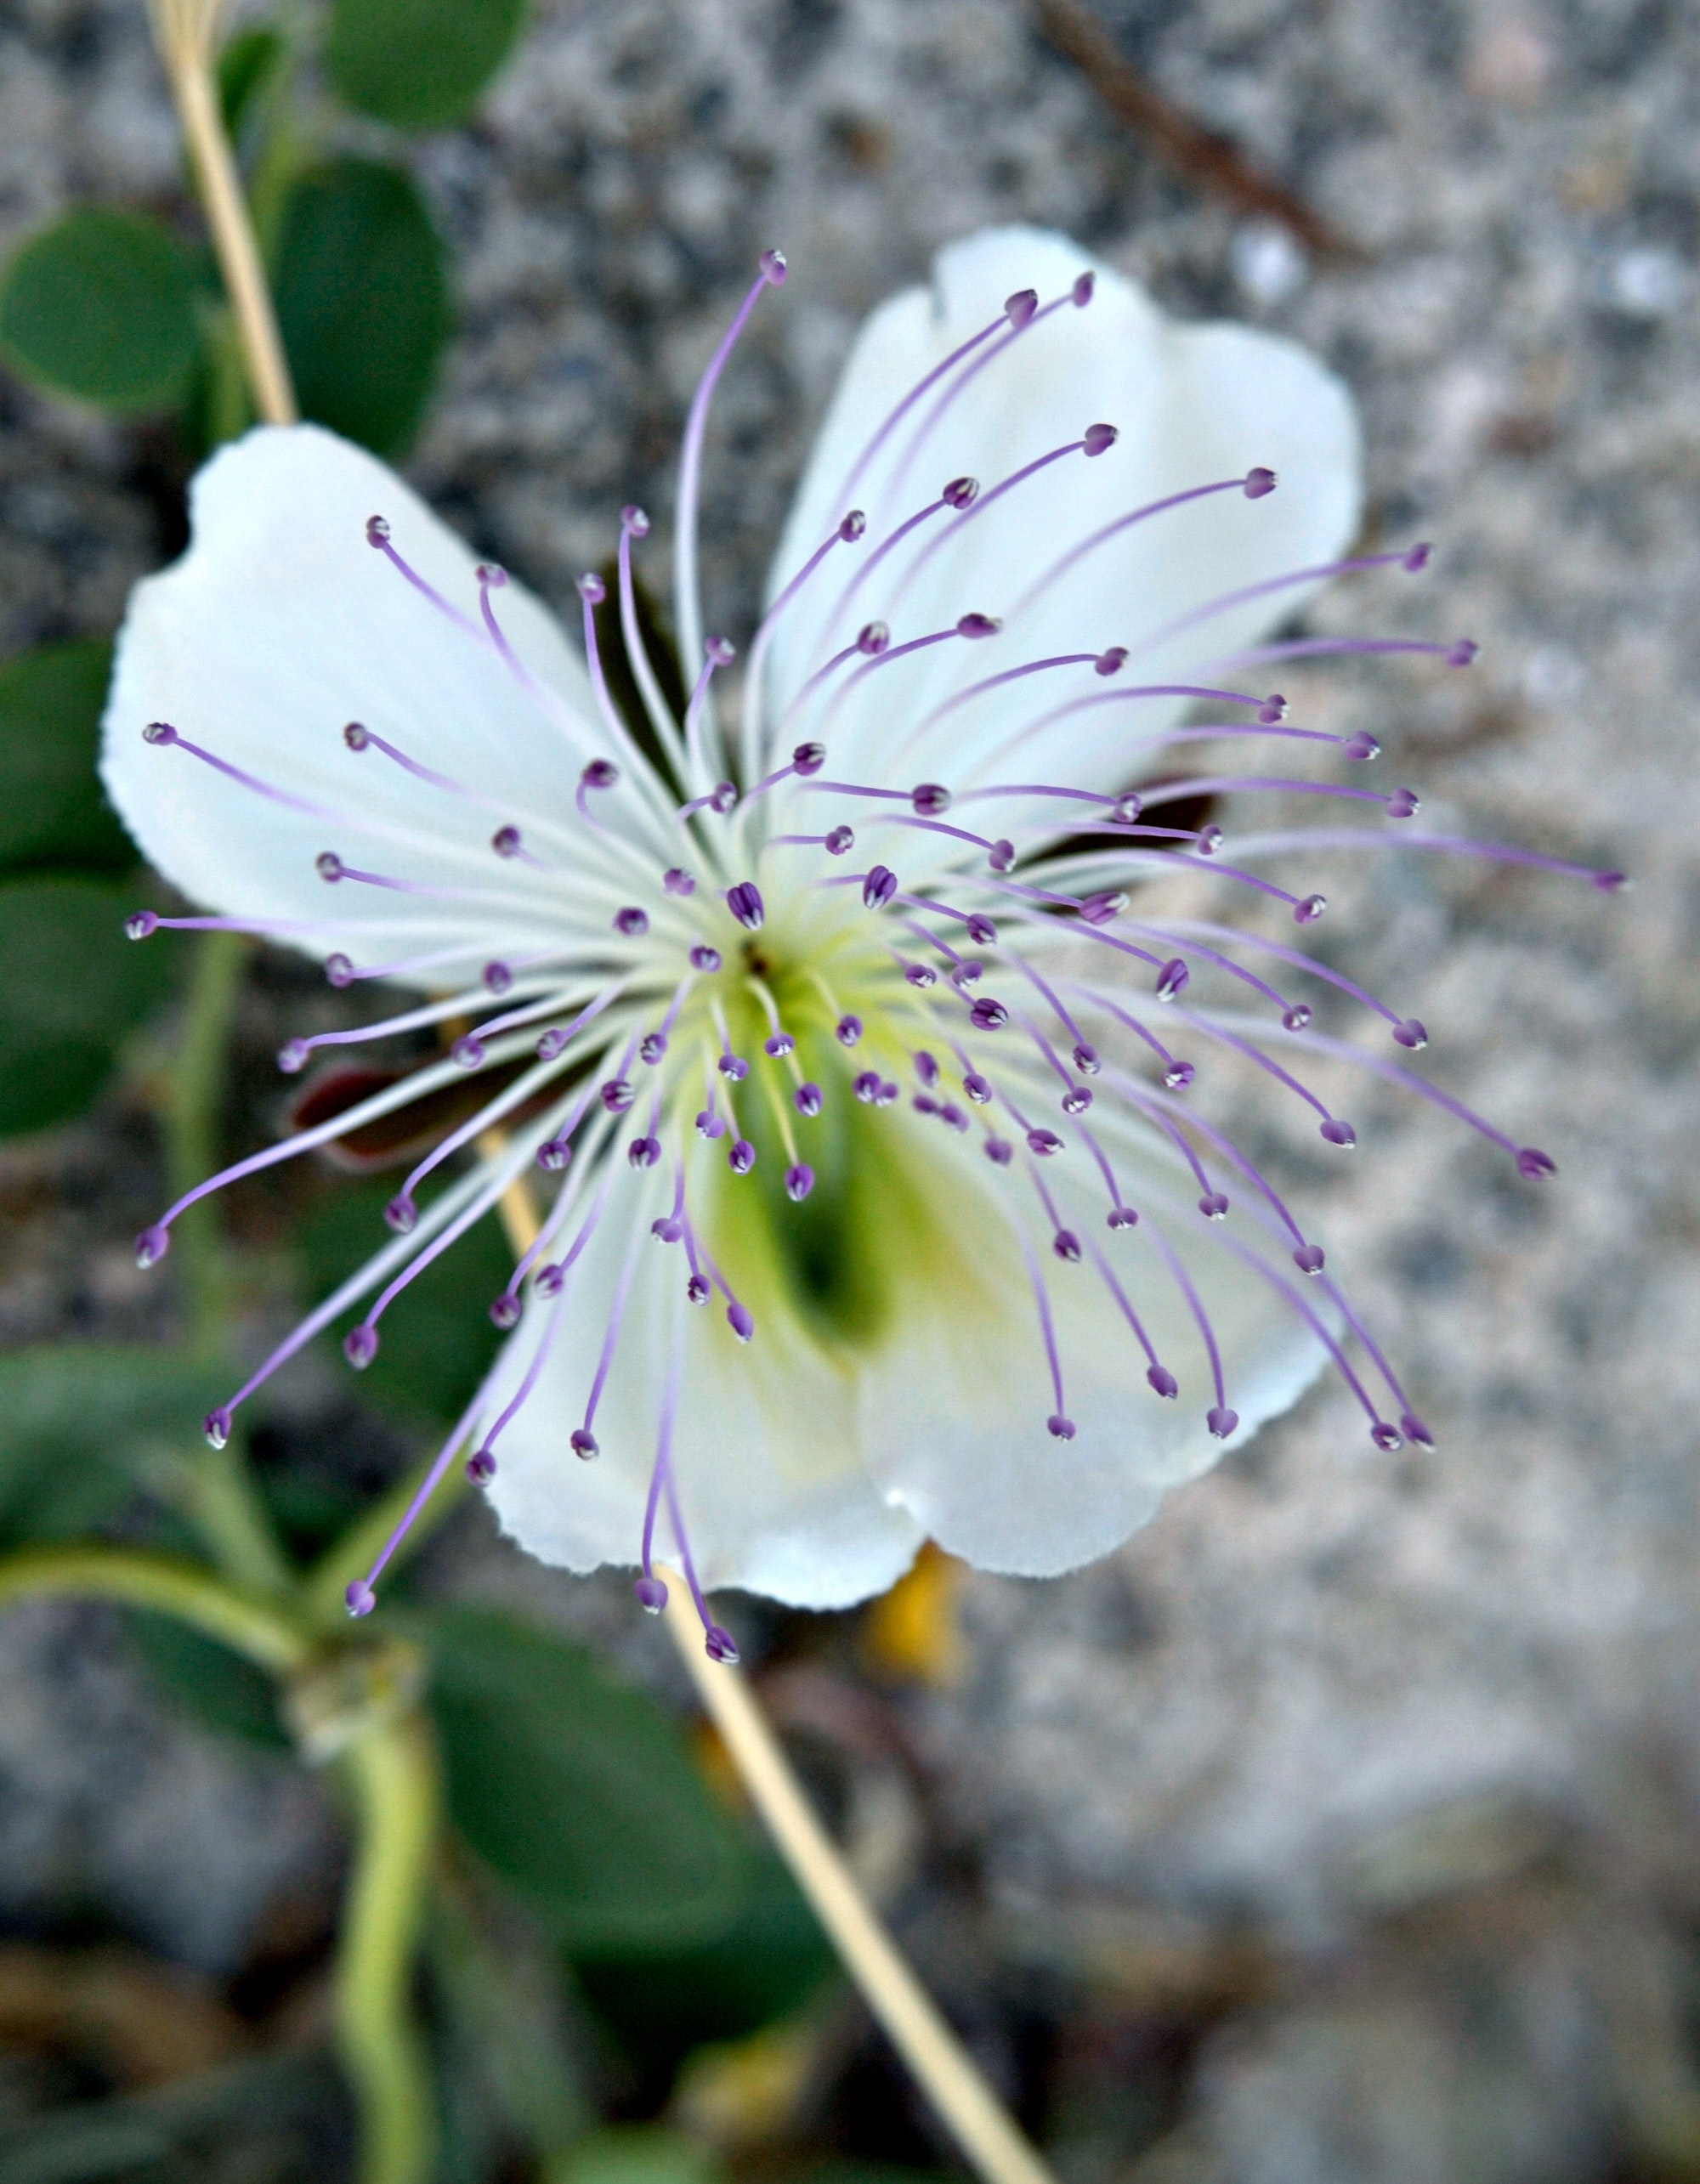 Close-up phorography of white and purple flower photo